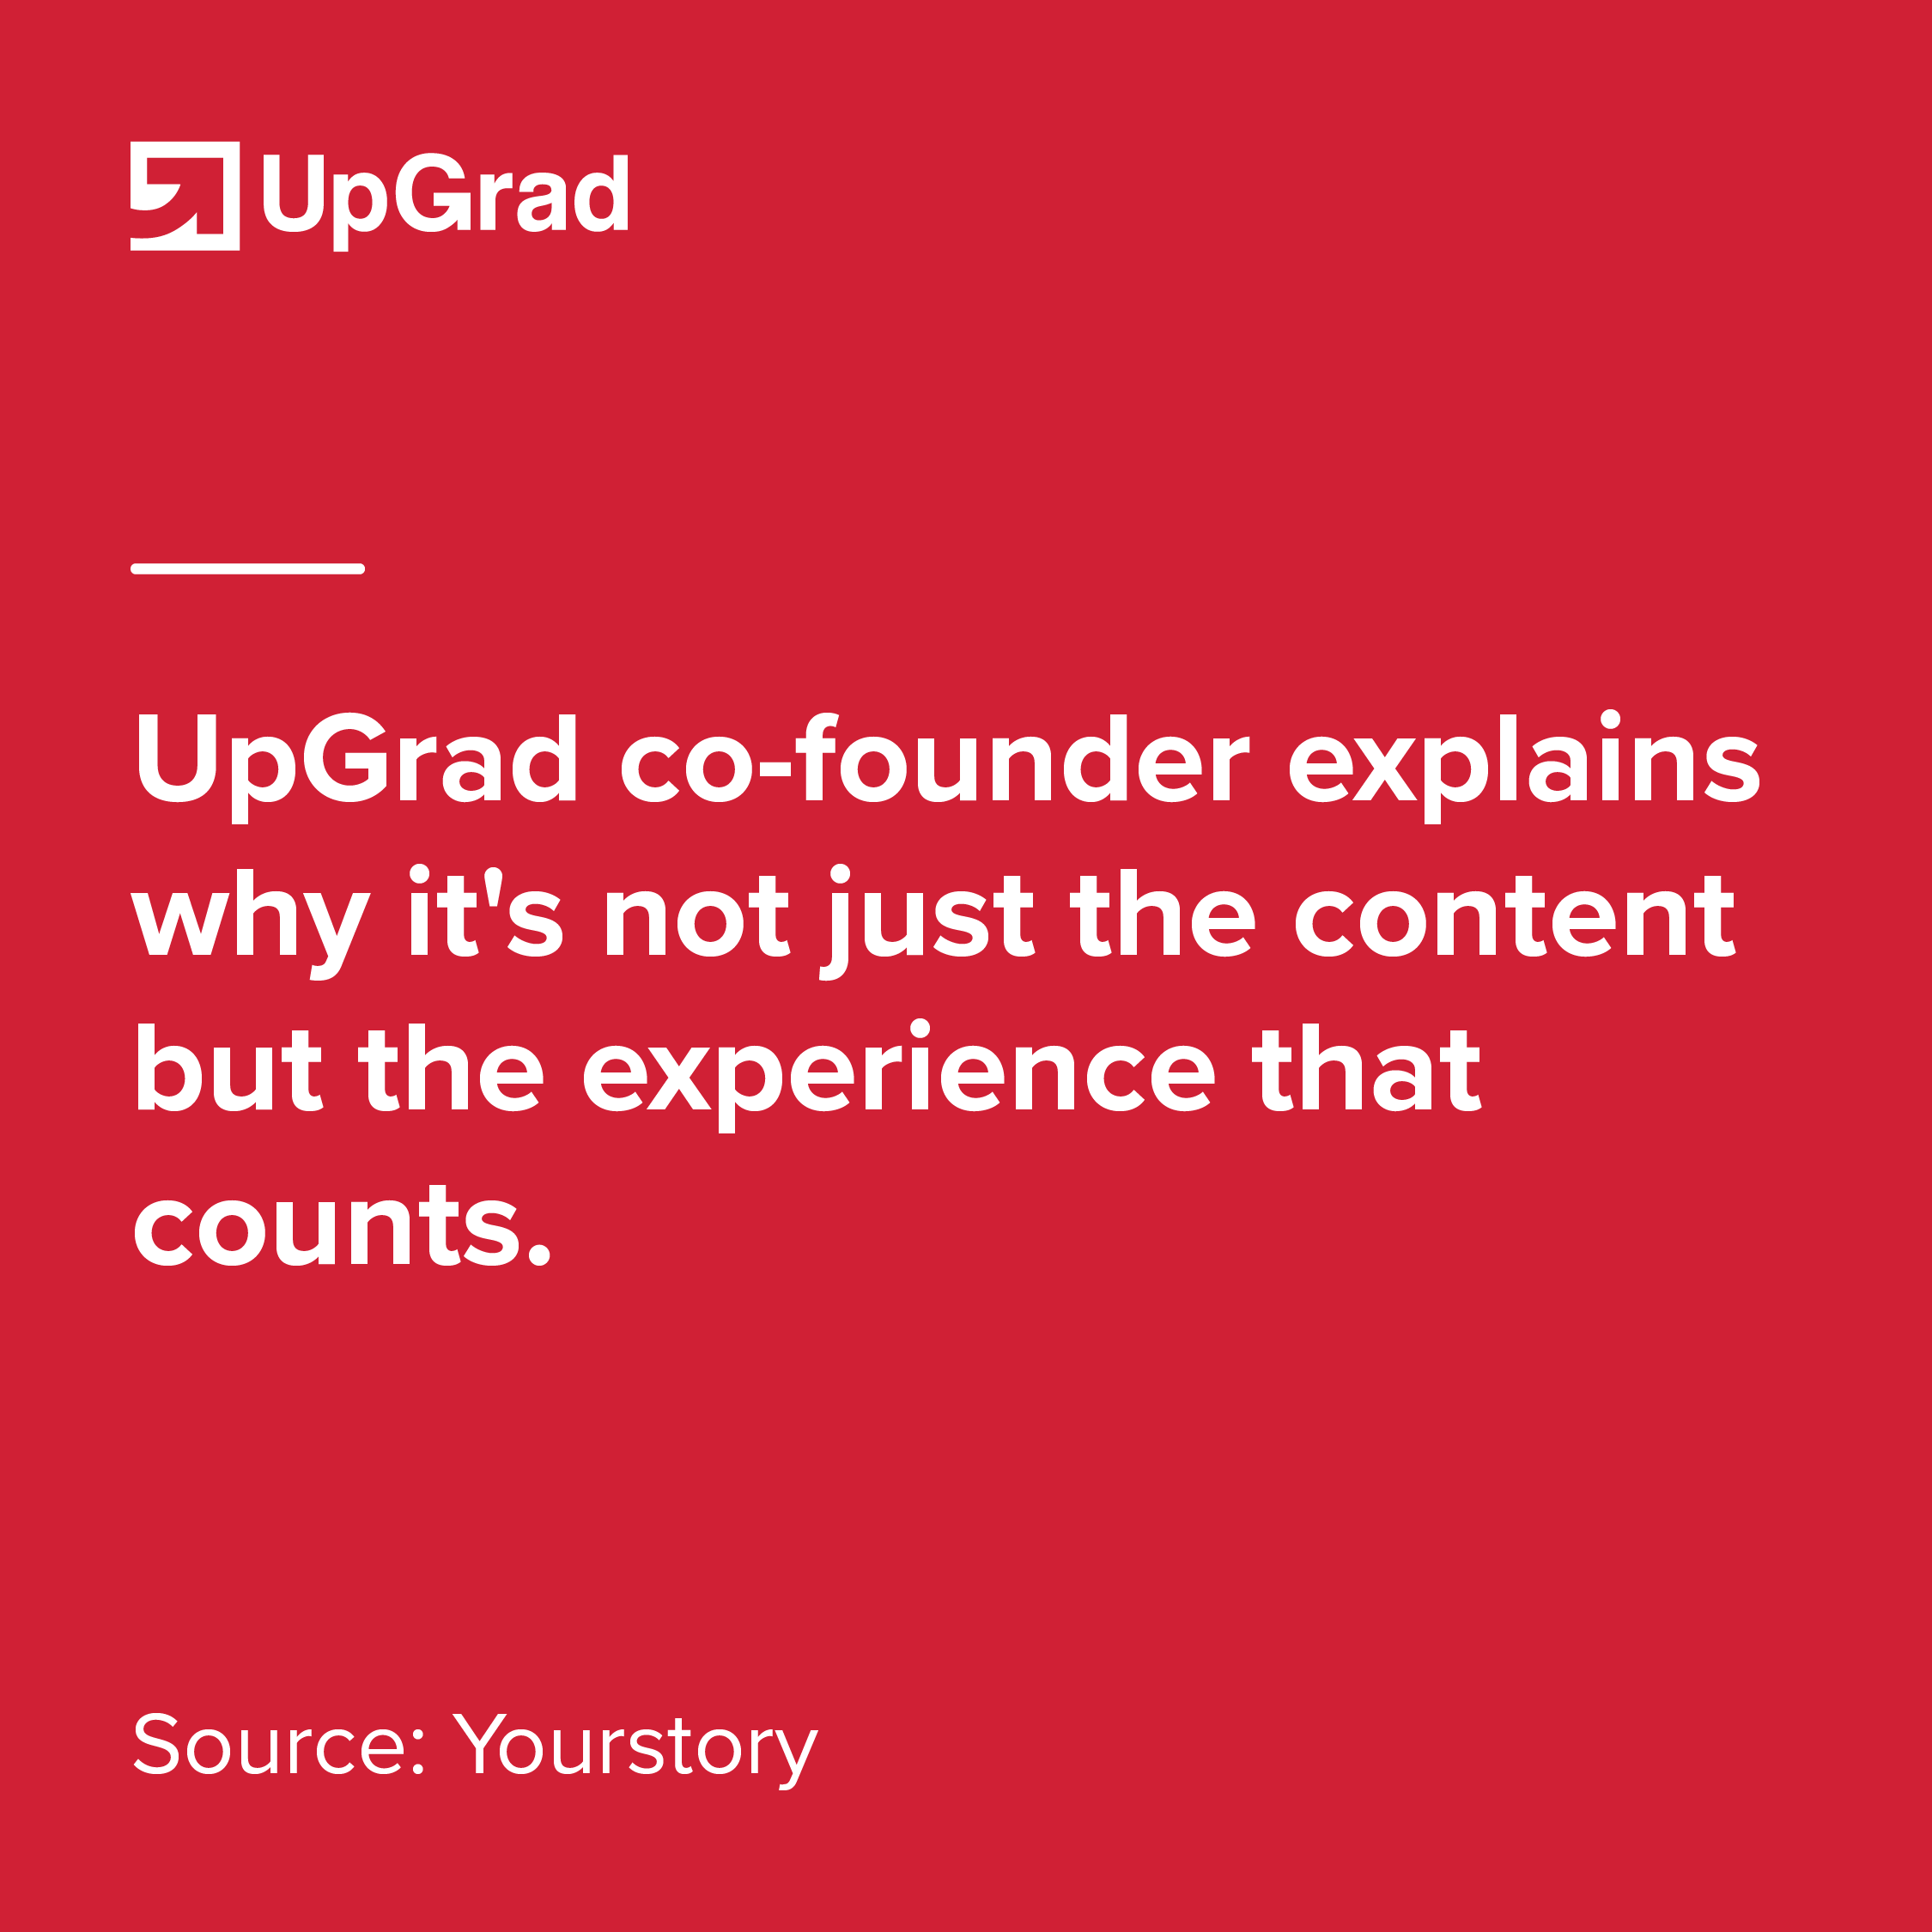 upgrad cofounder explains why experience counts